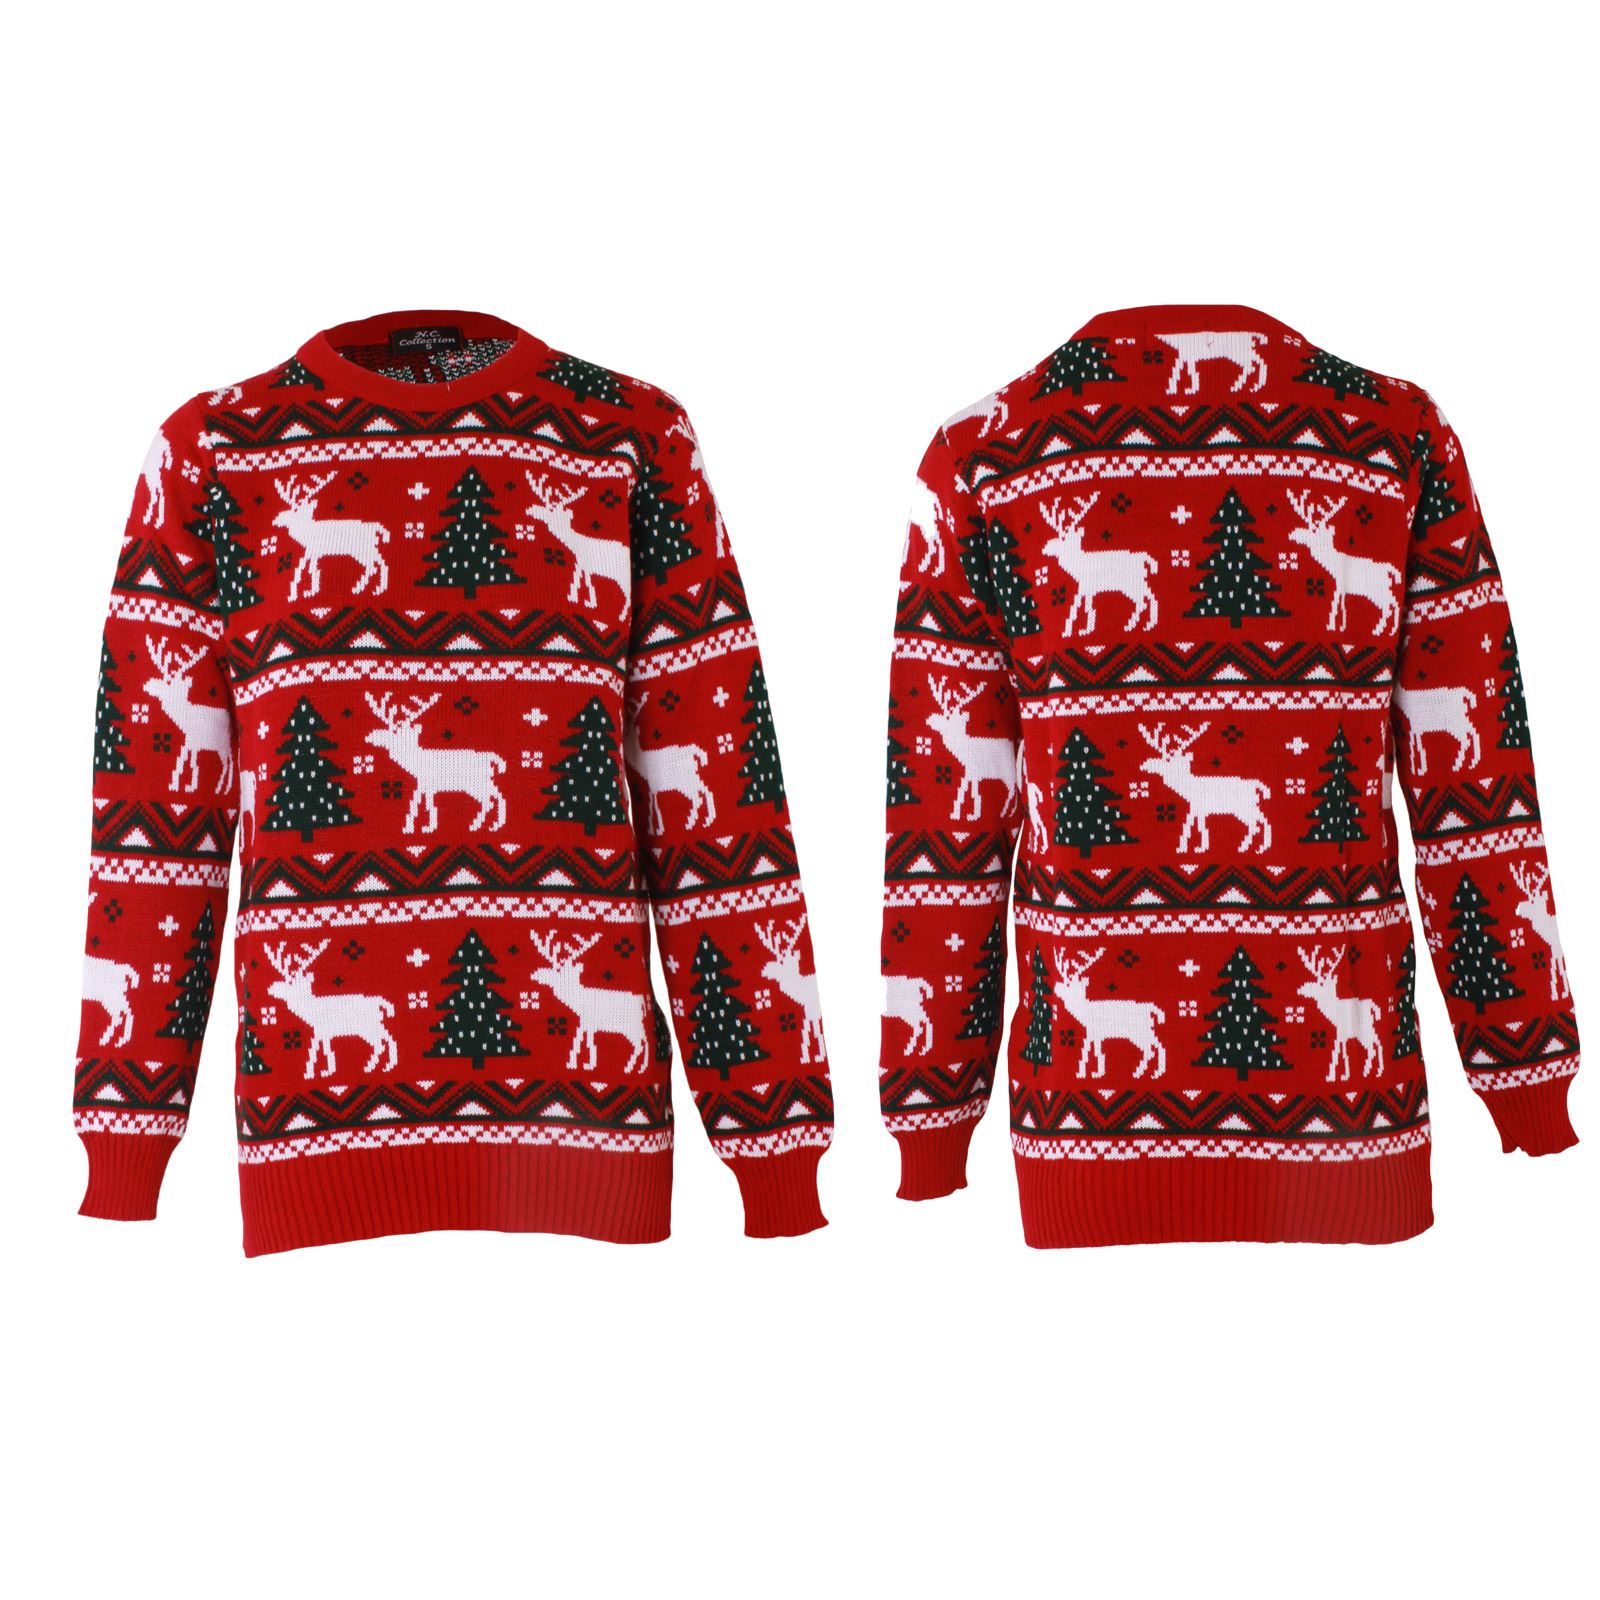 787e3c6053fb Details about Unisex Christmas Jumper Womens Cardigan Xmas Knitted Reindeer  Aztec Long Sleeves